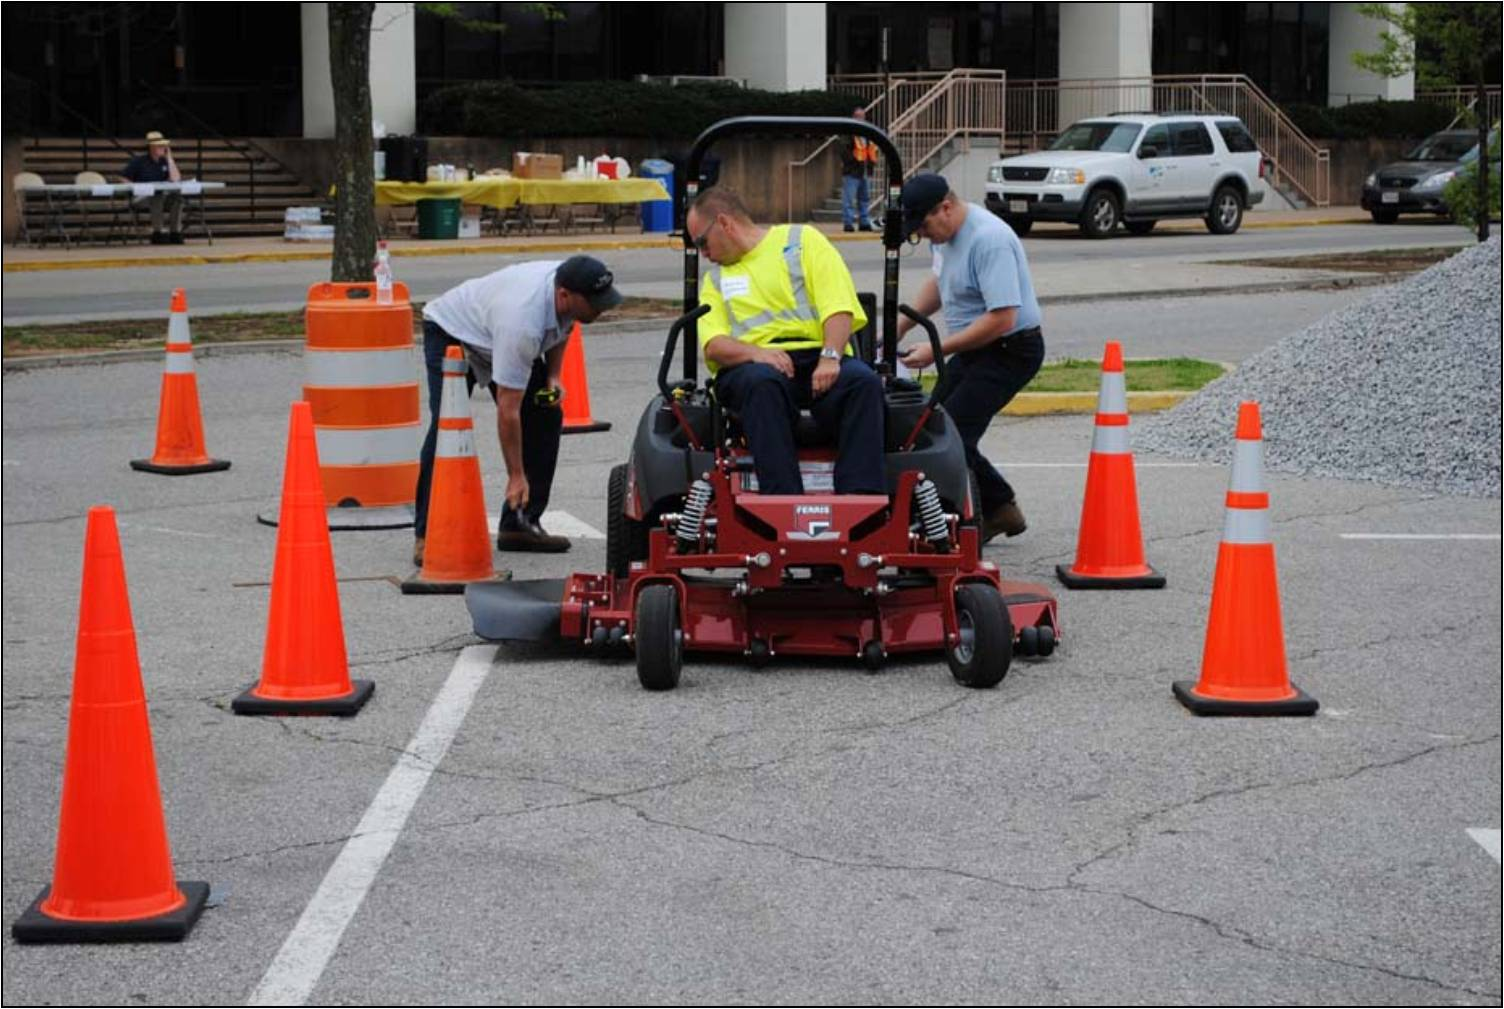 Town of Vinton employees Kevin and Mike measuring up the competition in the Zero Turn Mower event.